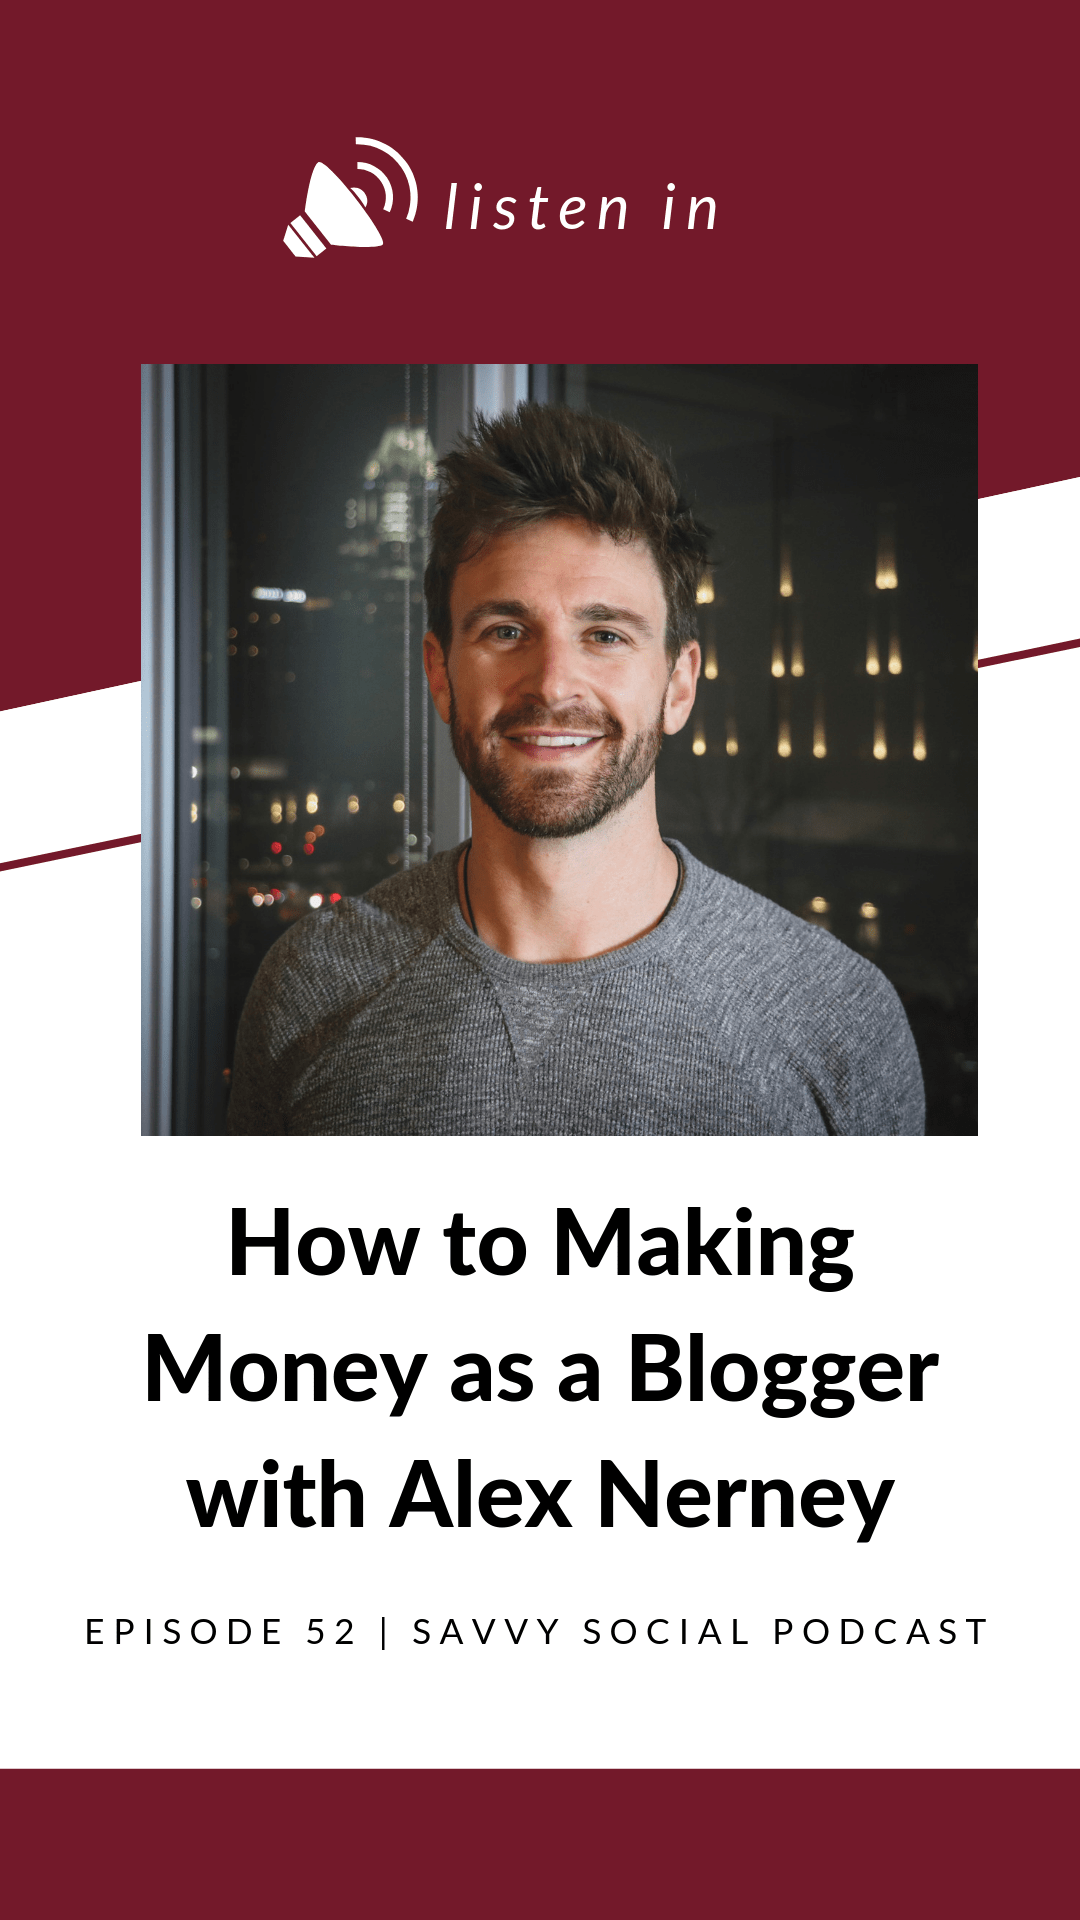 How to Making Money as a Blogger with Alex Nerney